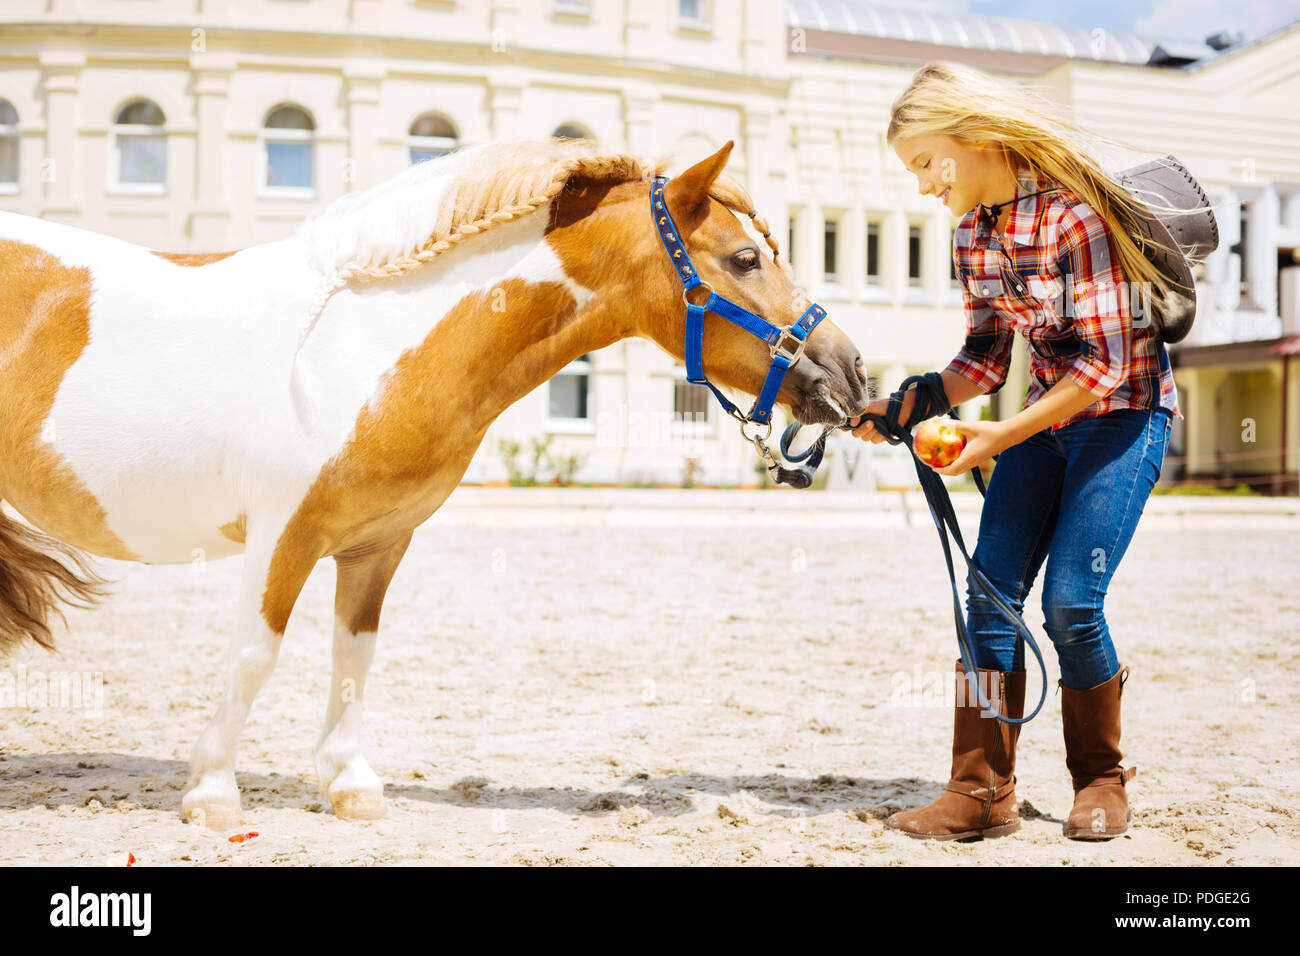 Caring schoolgirl coming to stable for feeding little pony - Stock Image